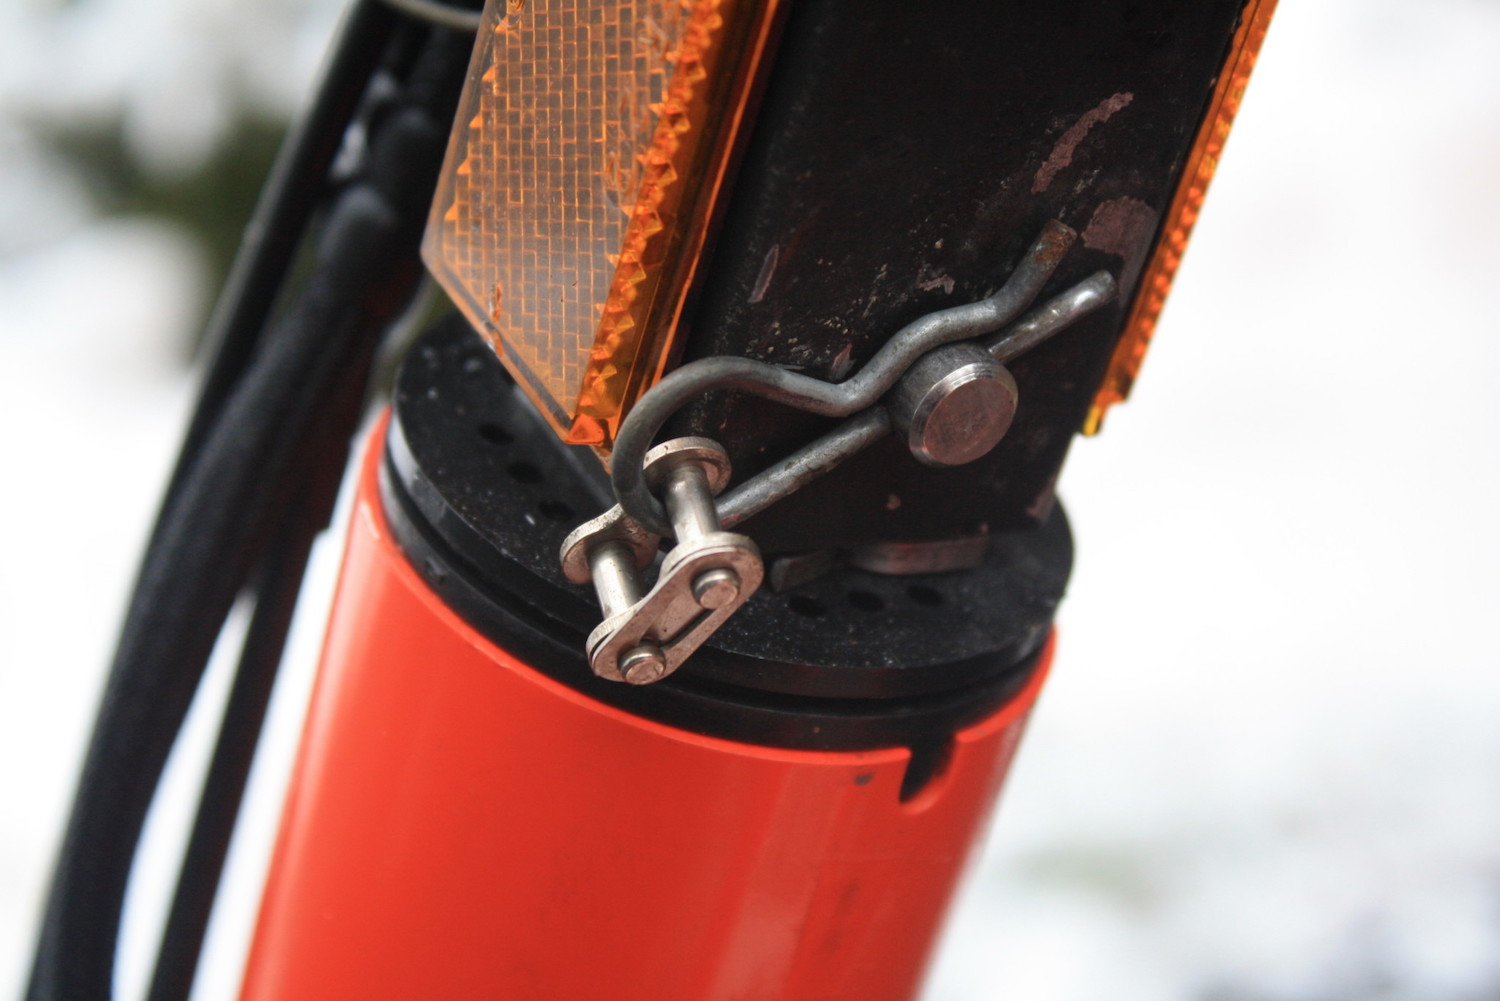 snow bike pin clip close-up